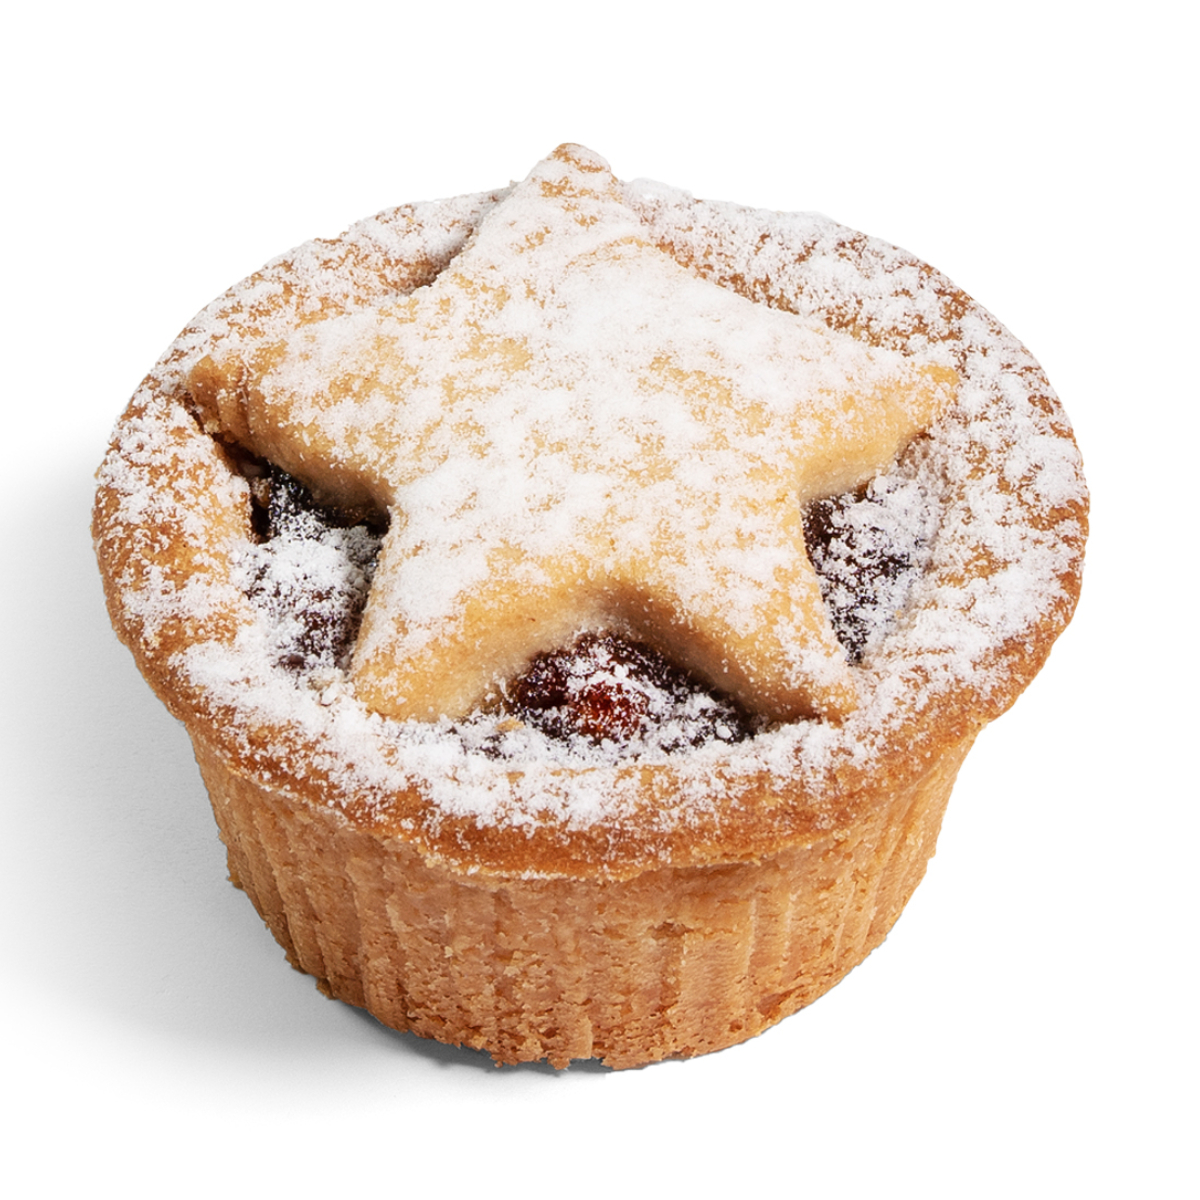 The mince pies are back, but this year they're vegan.